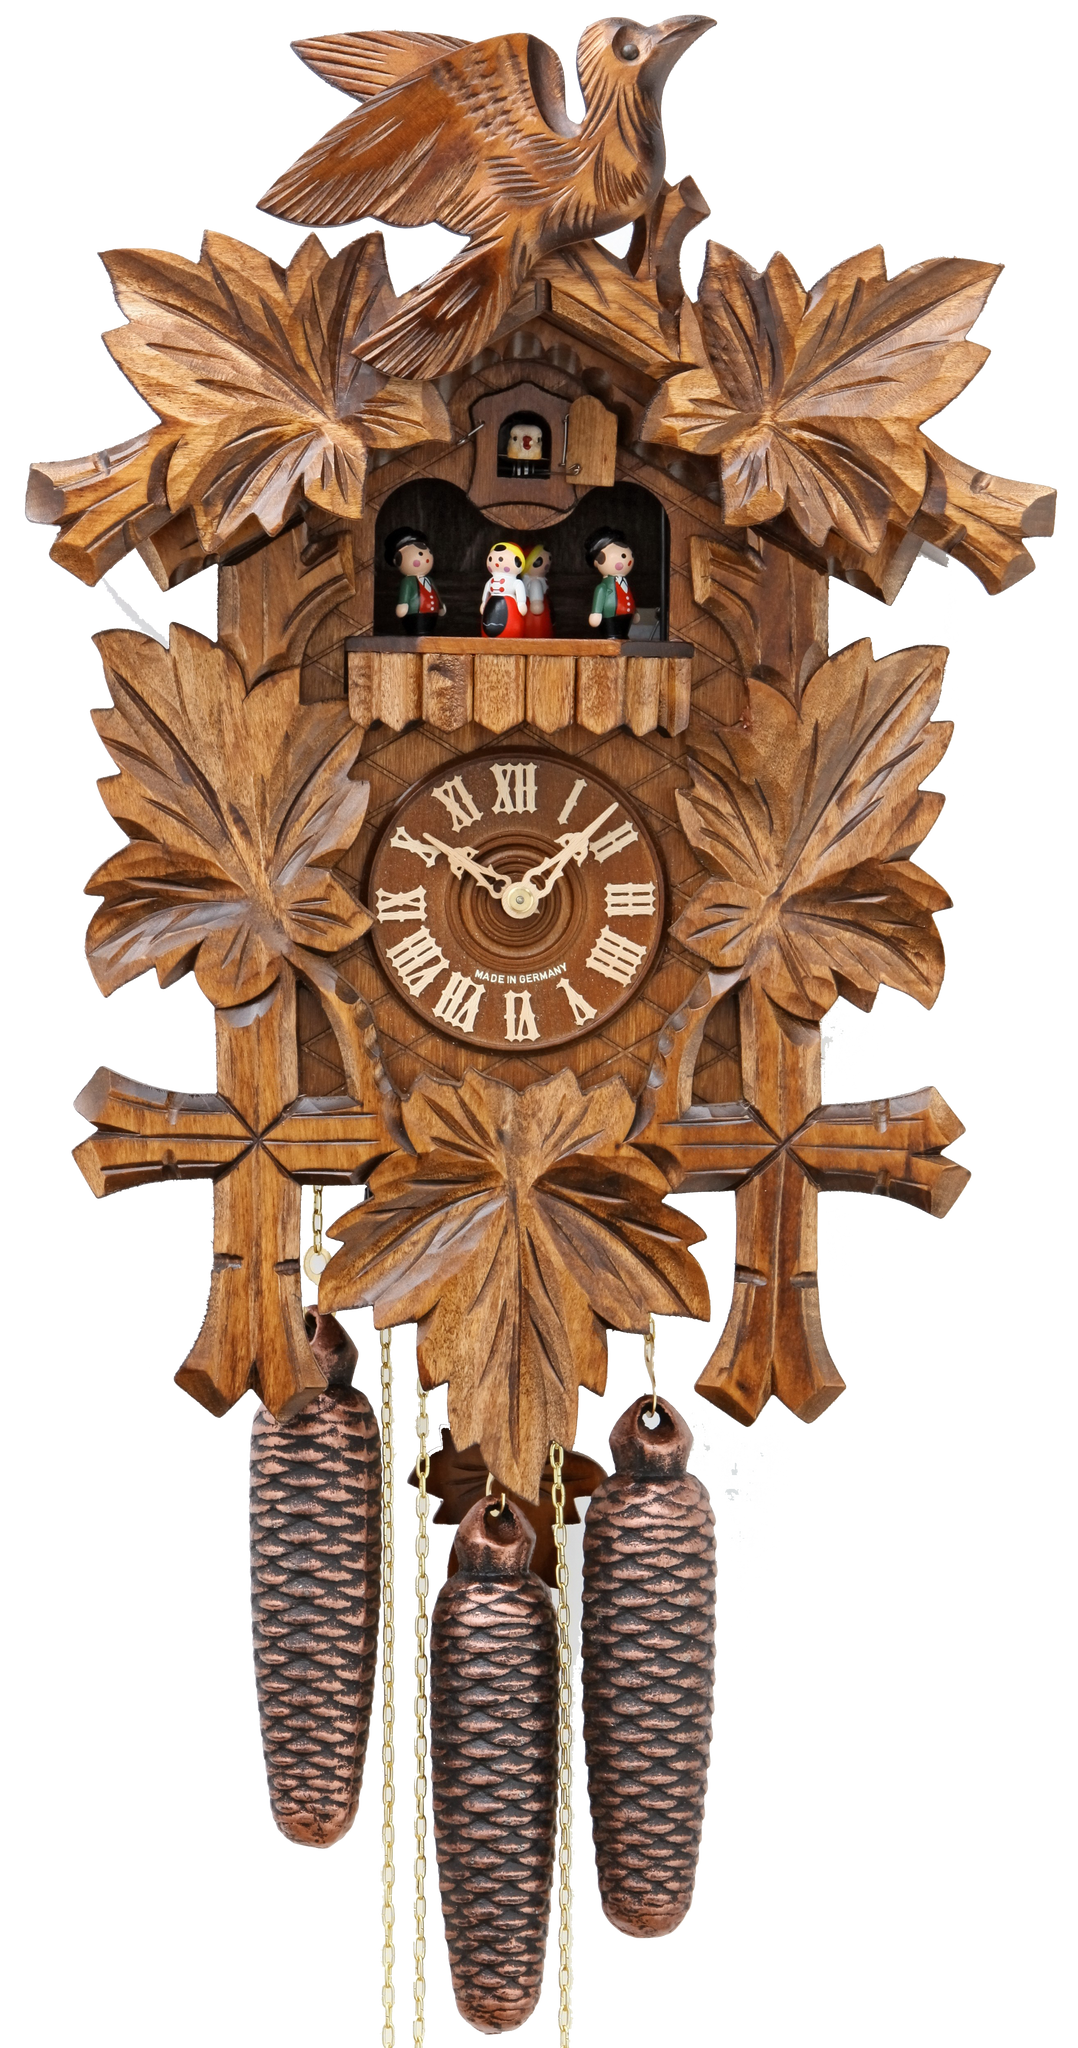 Cuckoo Clock Five Leaves and Bird 8-Day Movement with Music - Cuckoo Clock Meister